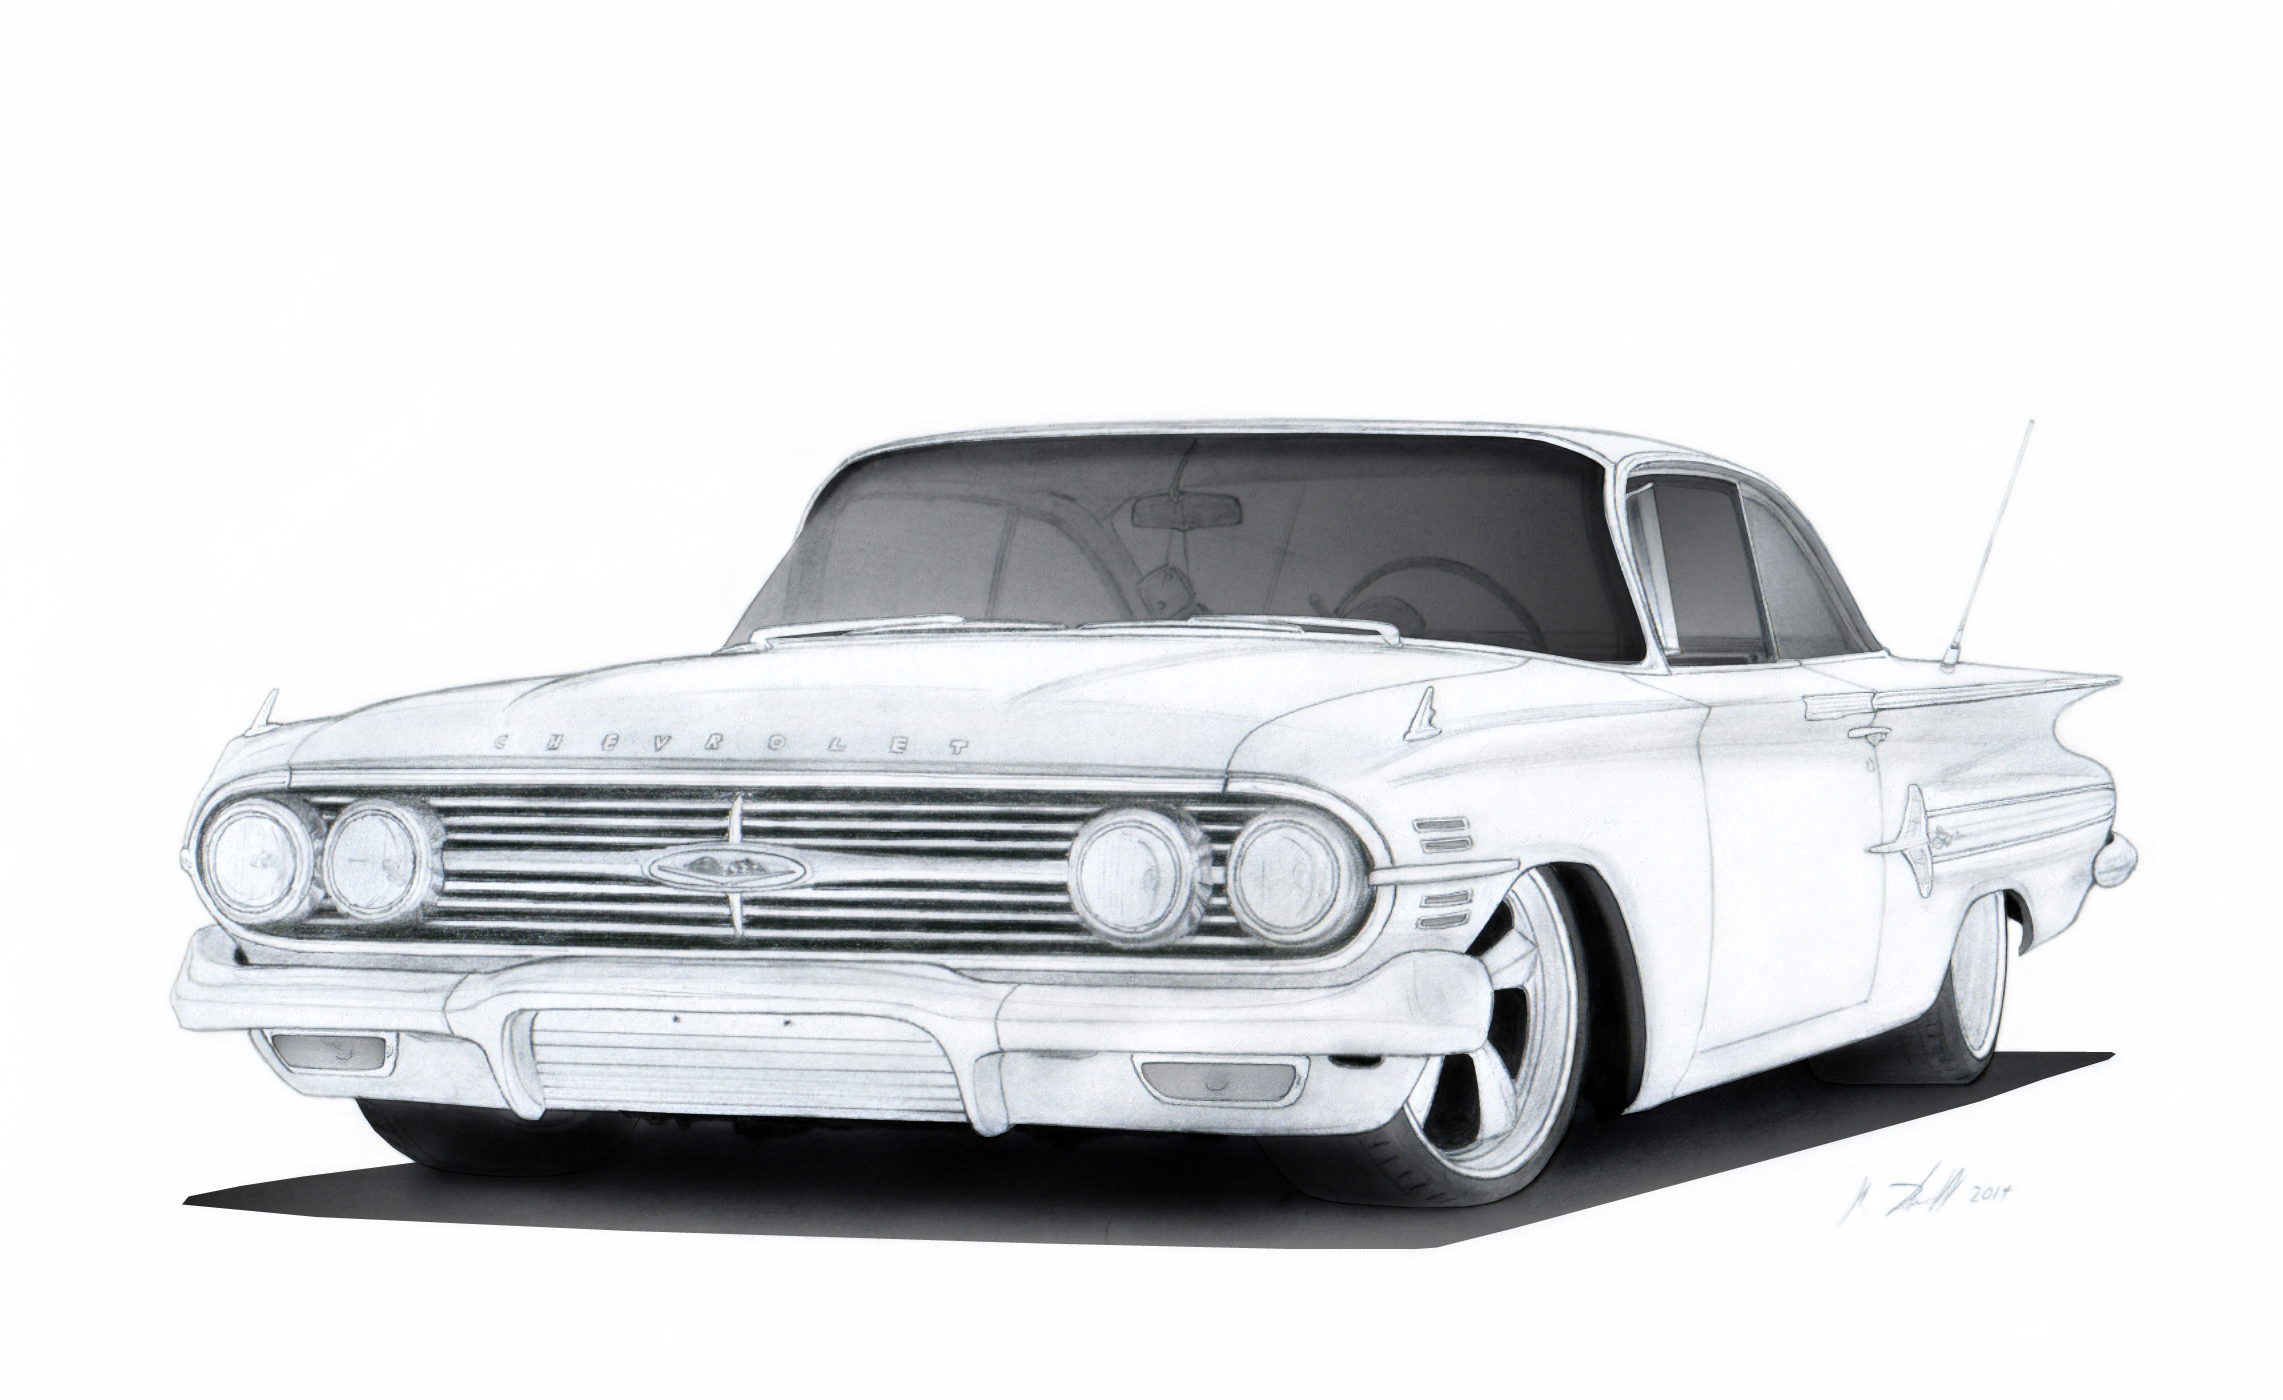 Watch likewise 1968 El Camino And 1968 El Camino Ss Review Interior moreover Lego Chevrolet Camaro 1968 as well 1960 Chevrolet Impala Pro Touring Drawing 460988782 furthermore 1971 Chevy Nova And 1971 Chevrolet Nova Ss Review. on chevy nova muscle car